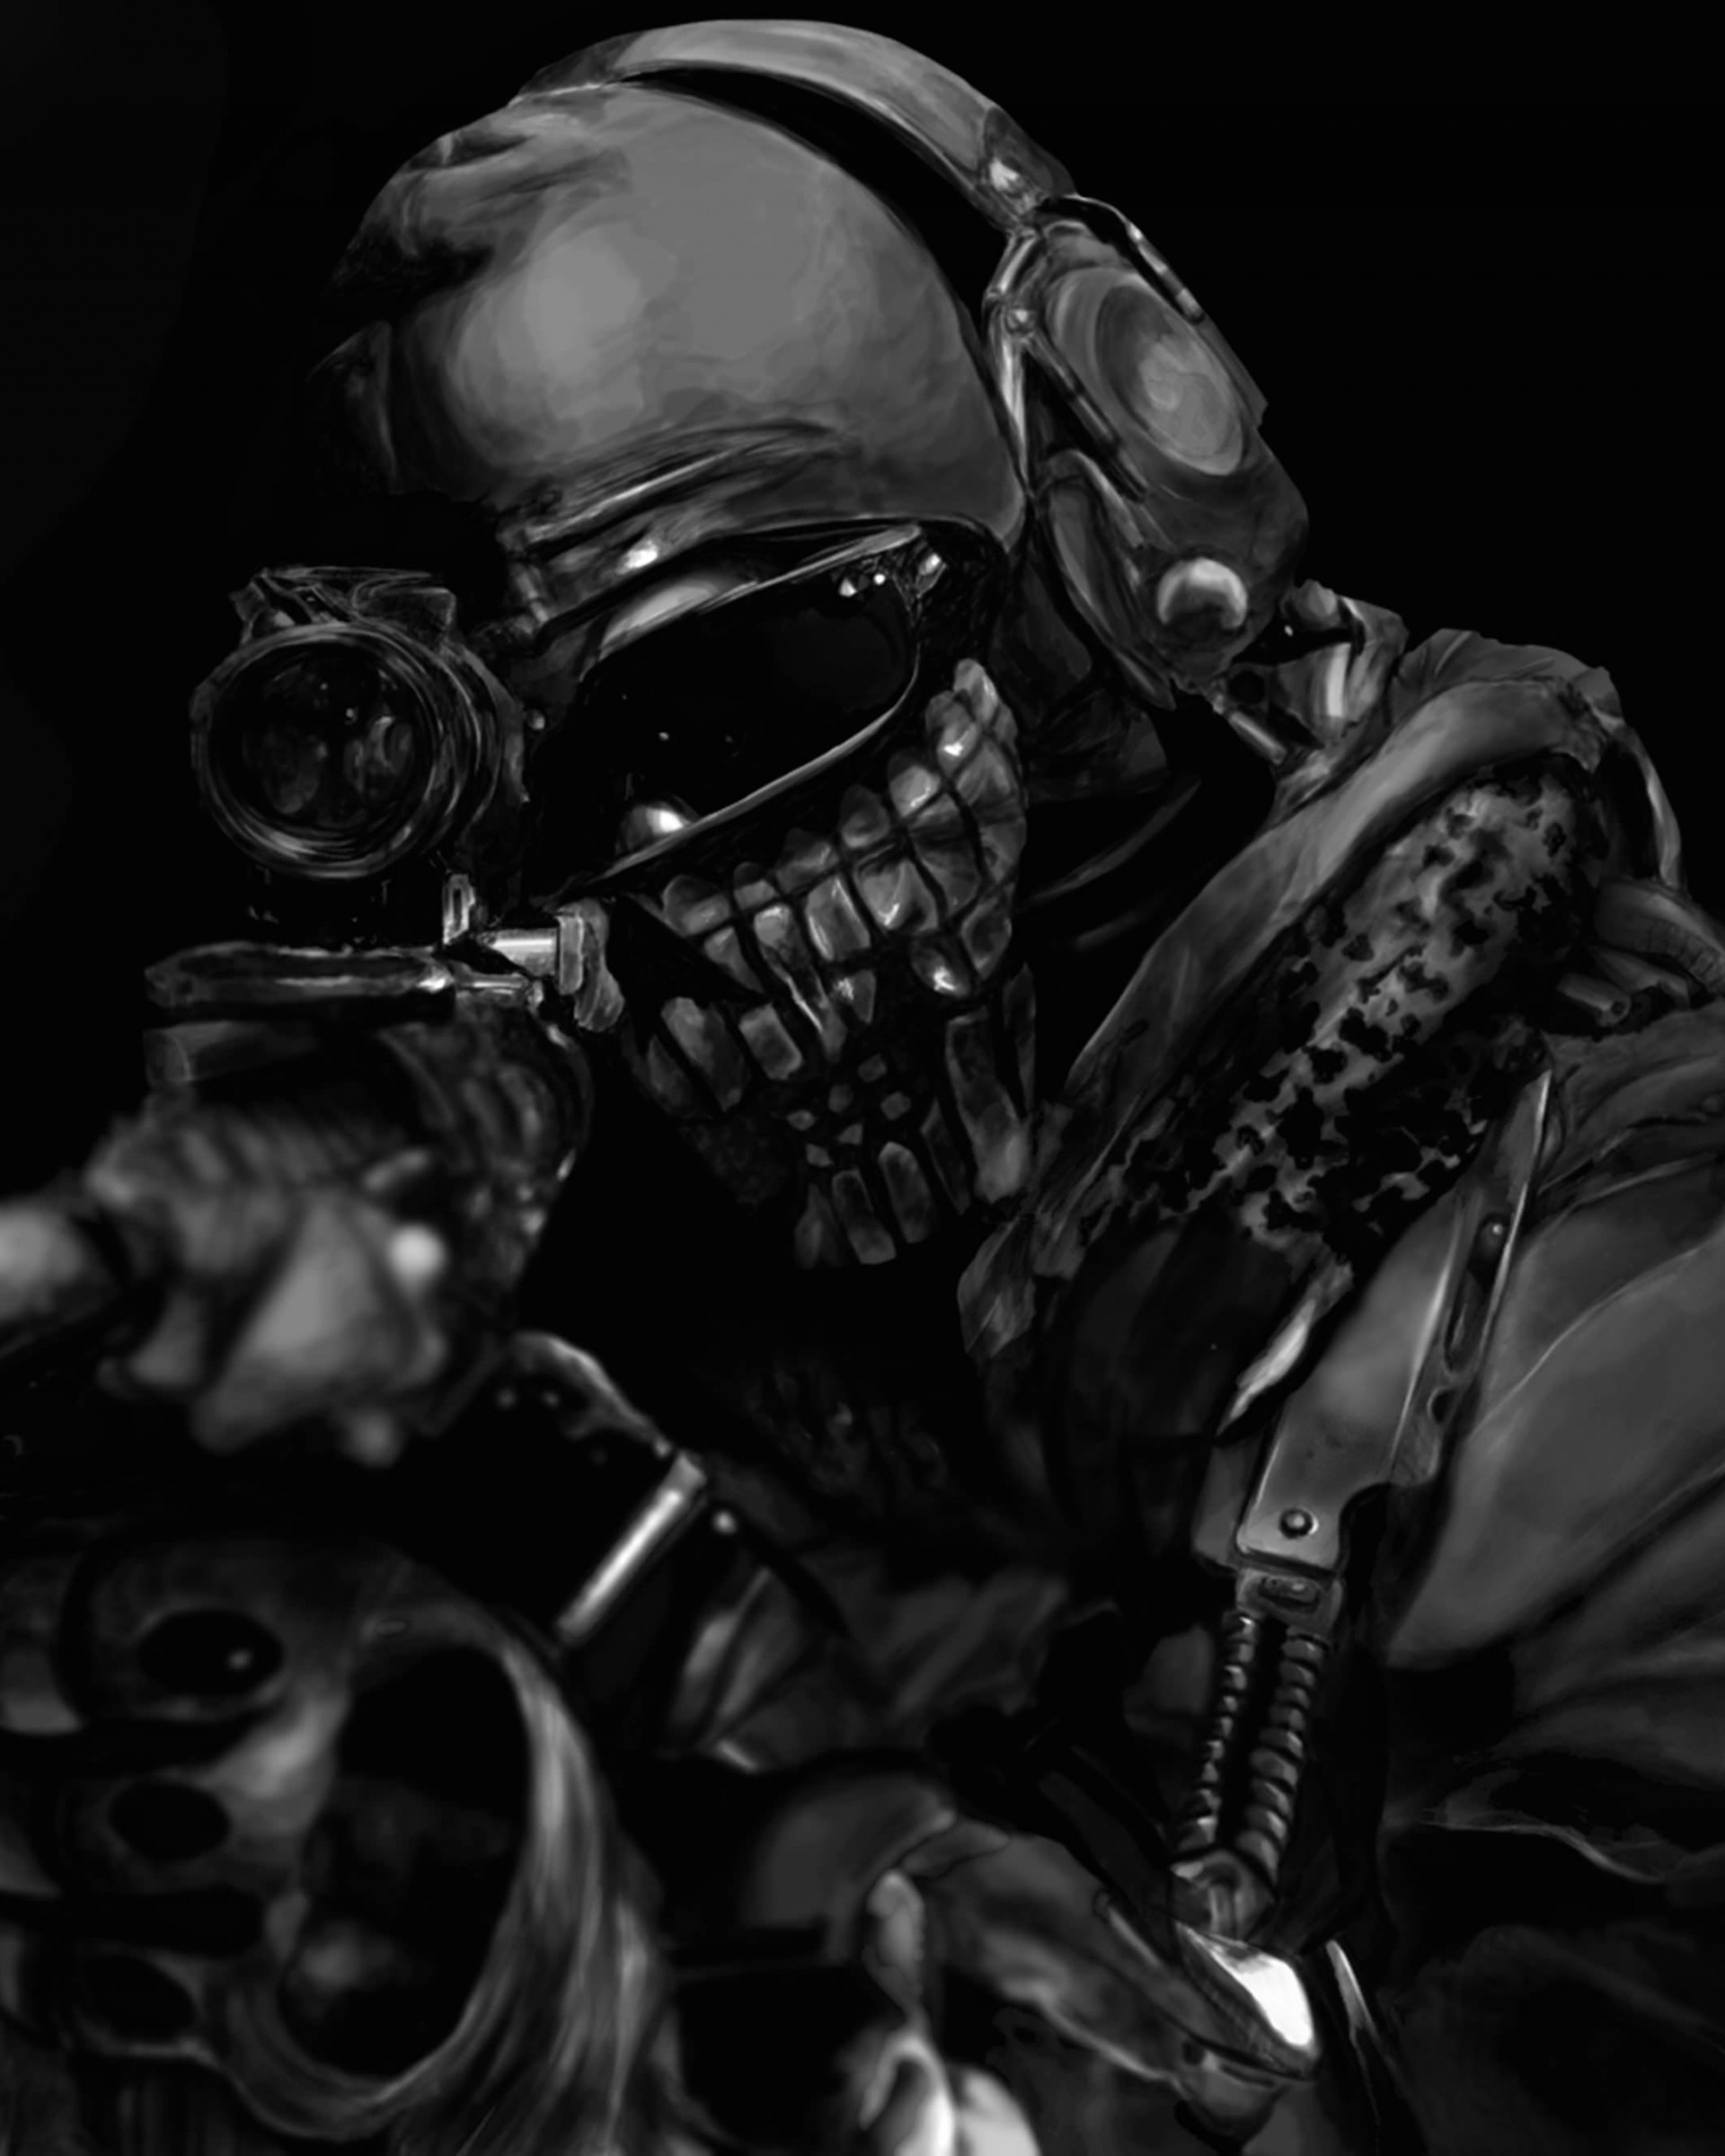 Call of Duty Ghost Masked Warrior Wallpaper for Google Nexus 7